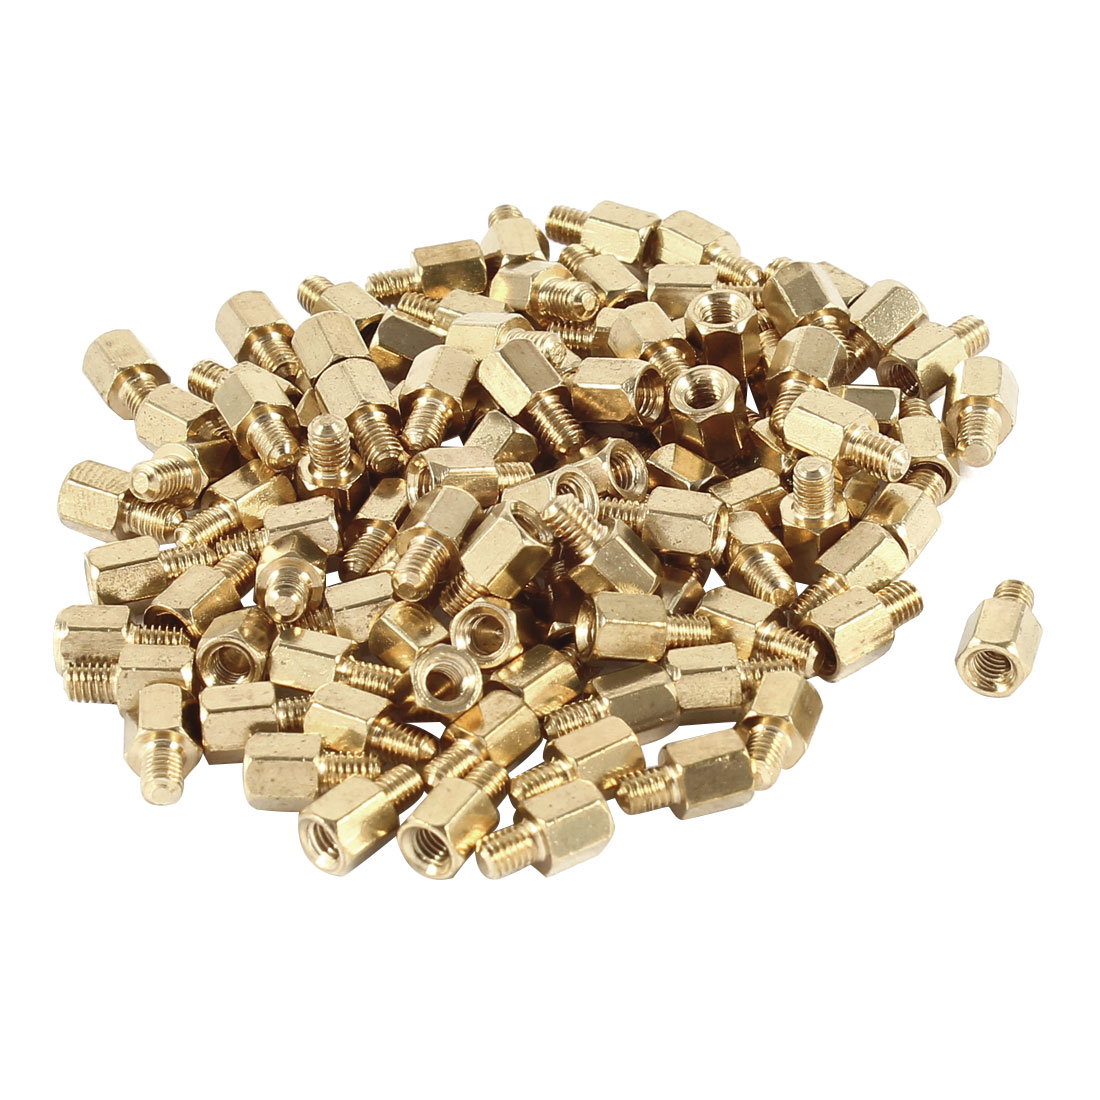 M3 Male to Female Thread 5mm+5mm PCB Spacer Stand-off 10mm Gold Tone 100 Pieces